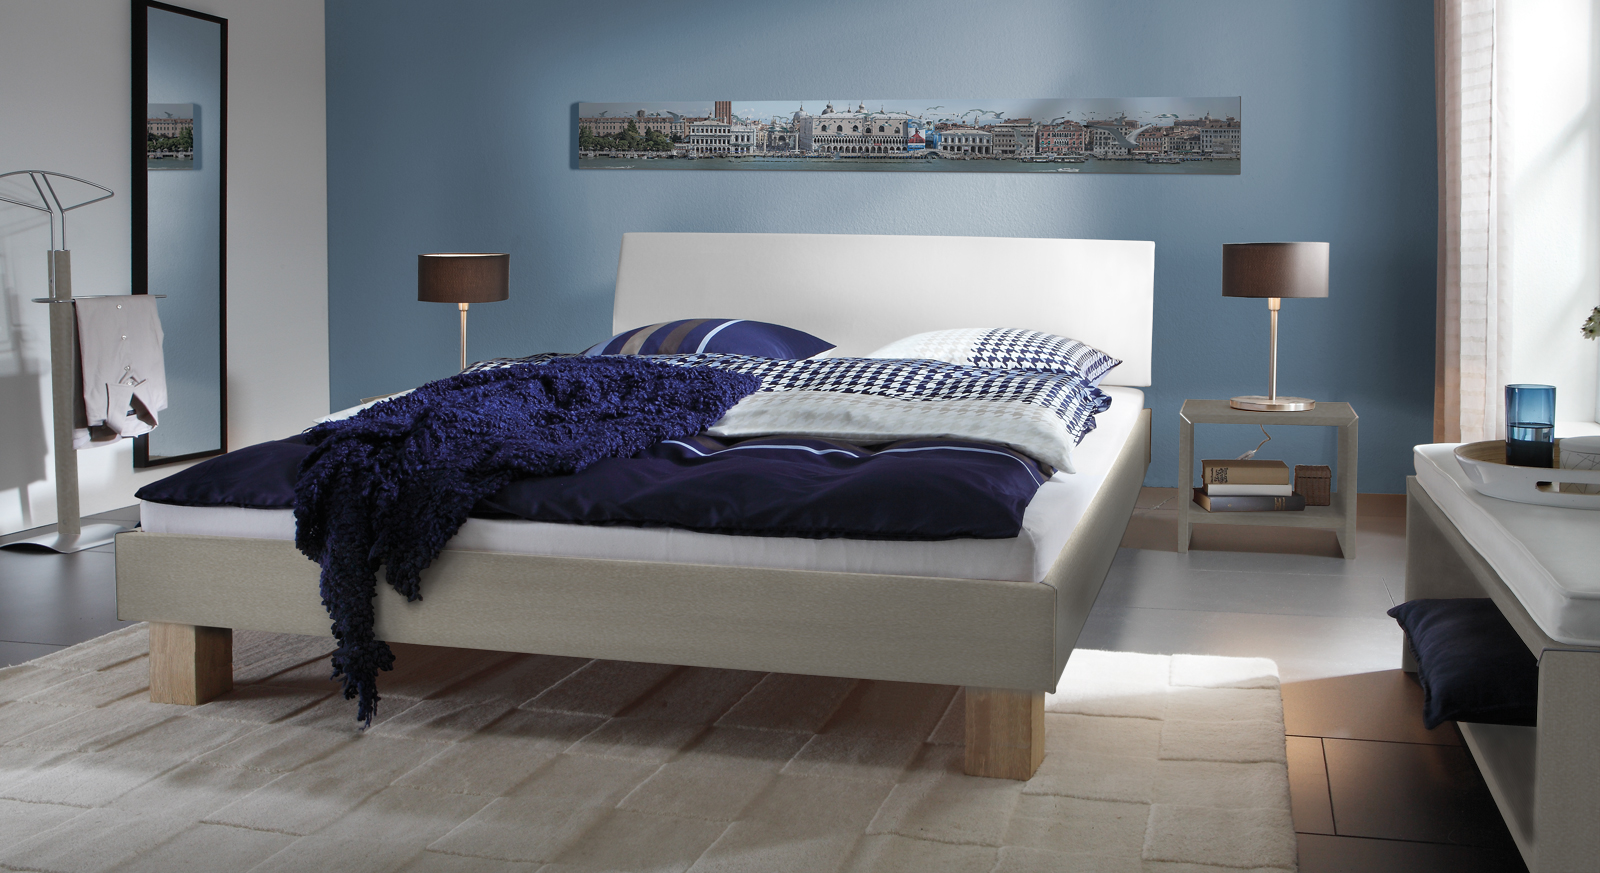 was f r farben w hle ich im schlafzimmer. Black Bedroom Furniture Sets. Home Design Ideas